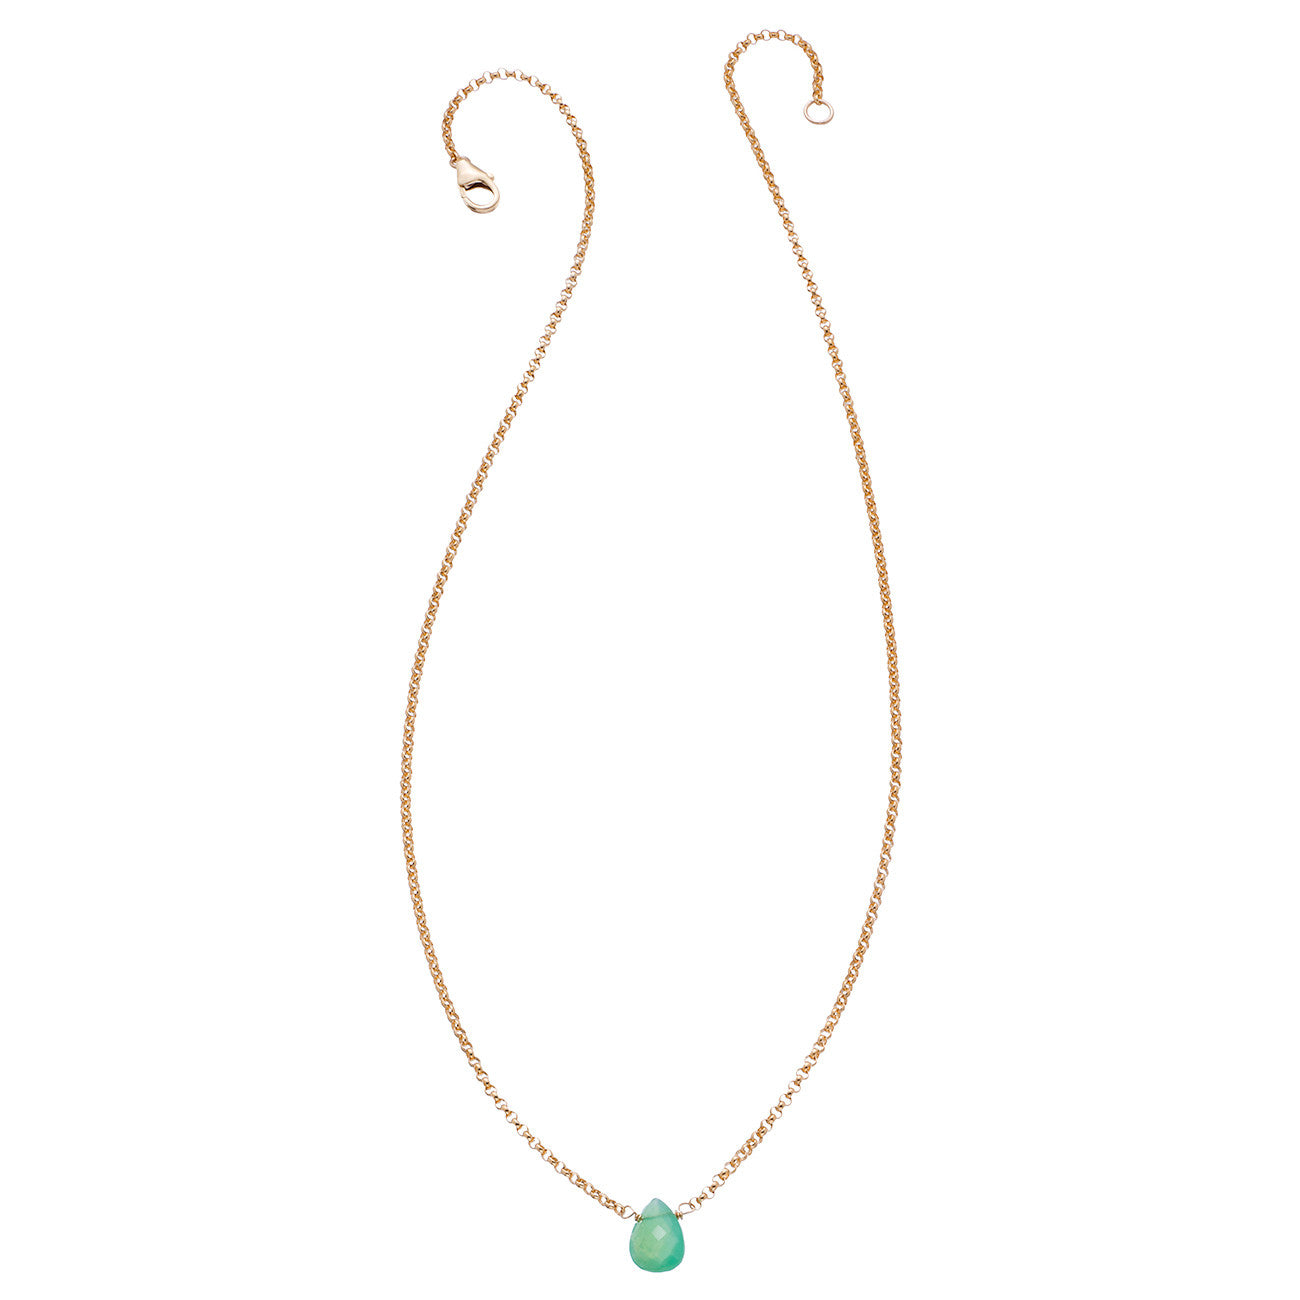 mint new products gemstone green necklace maymartininc